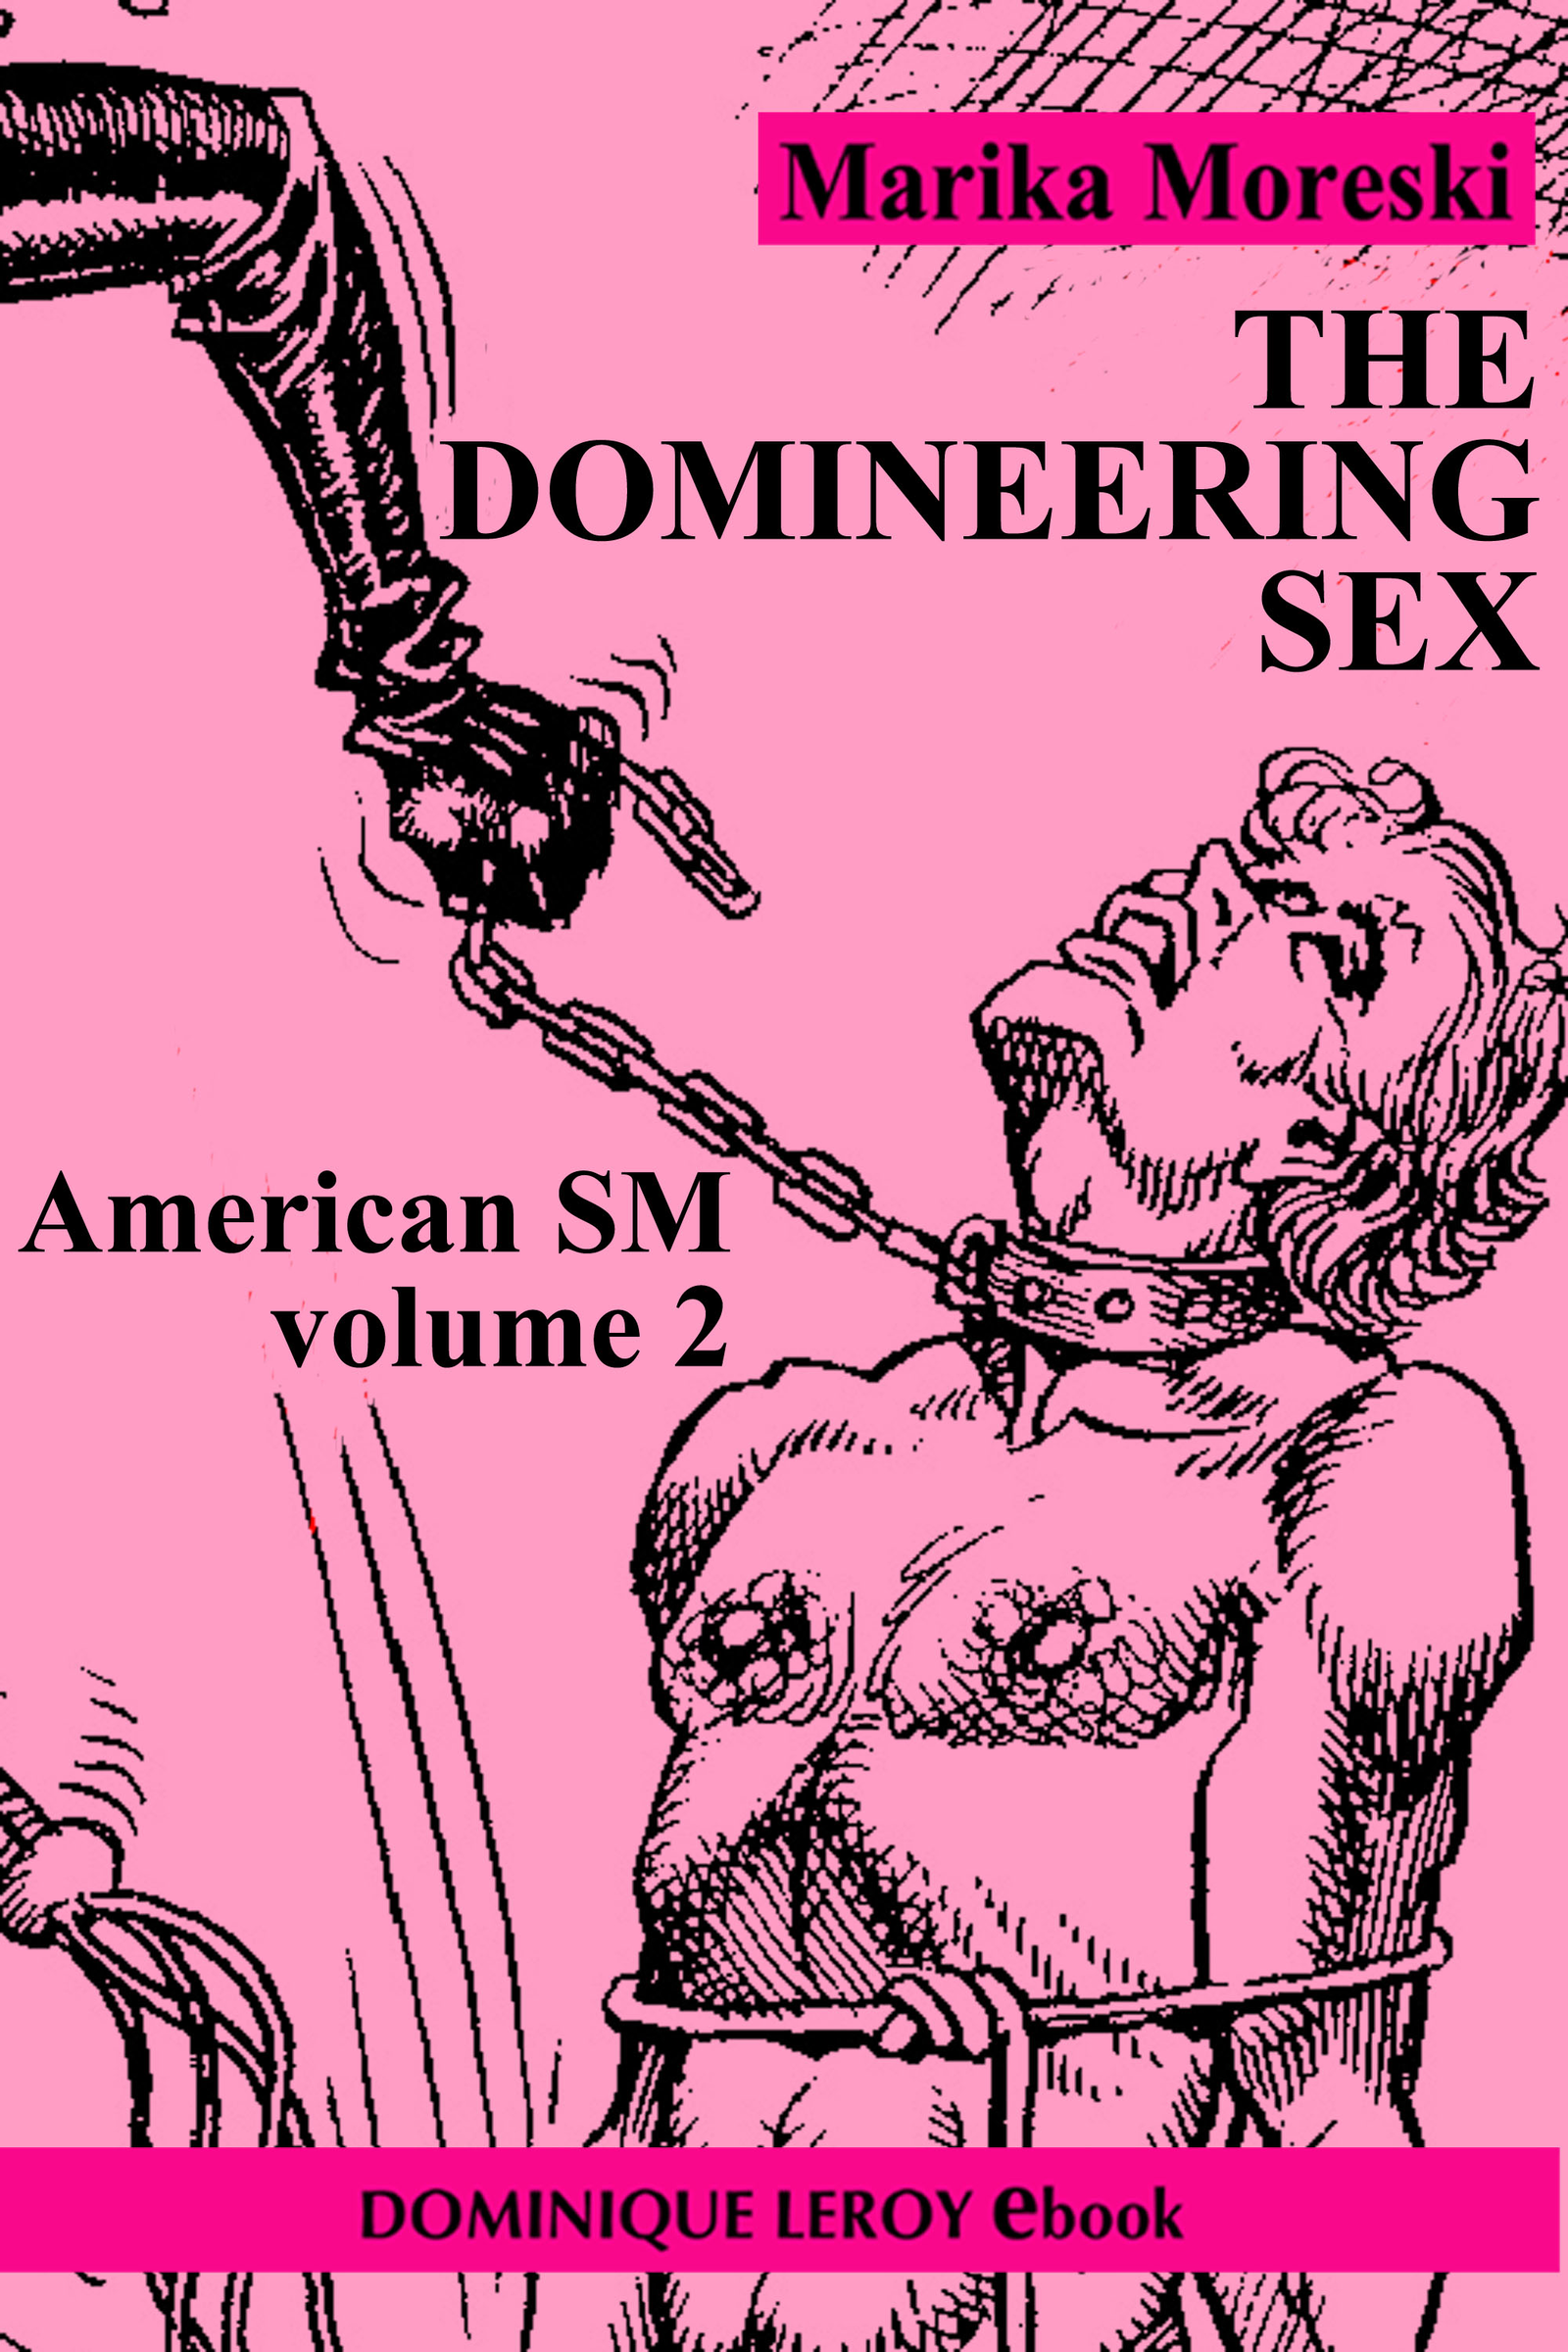 The Domineering Sex